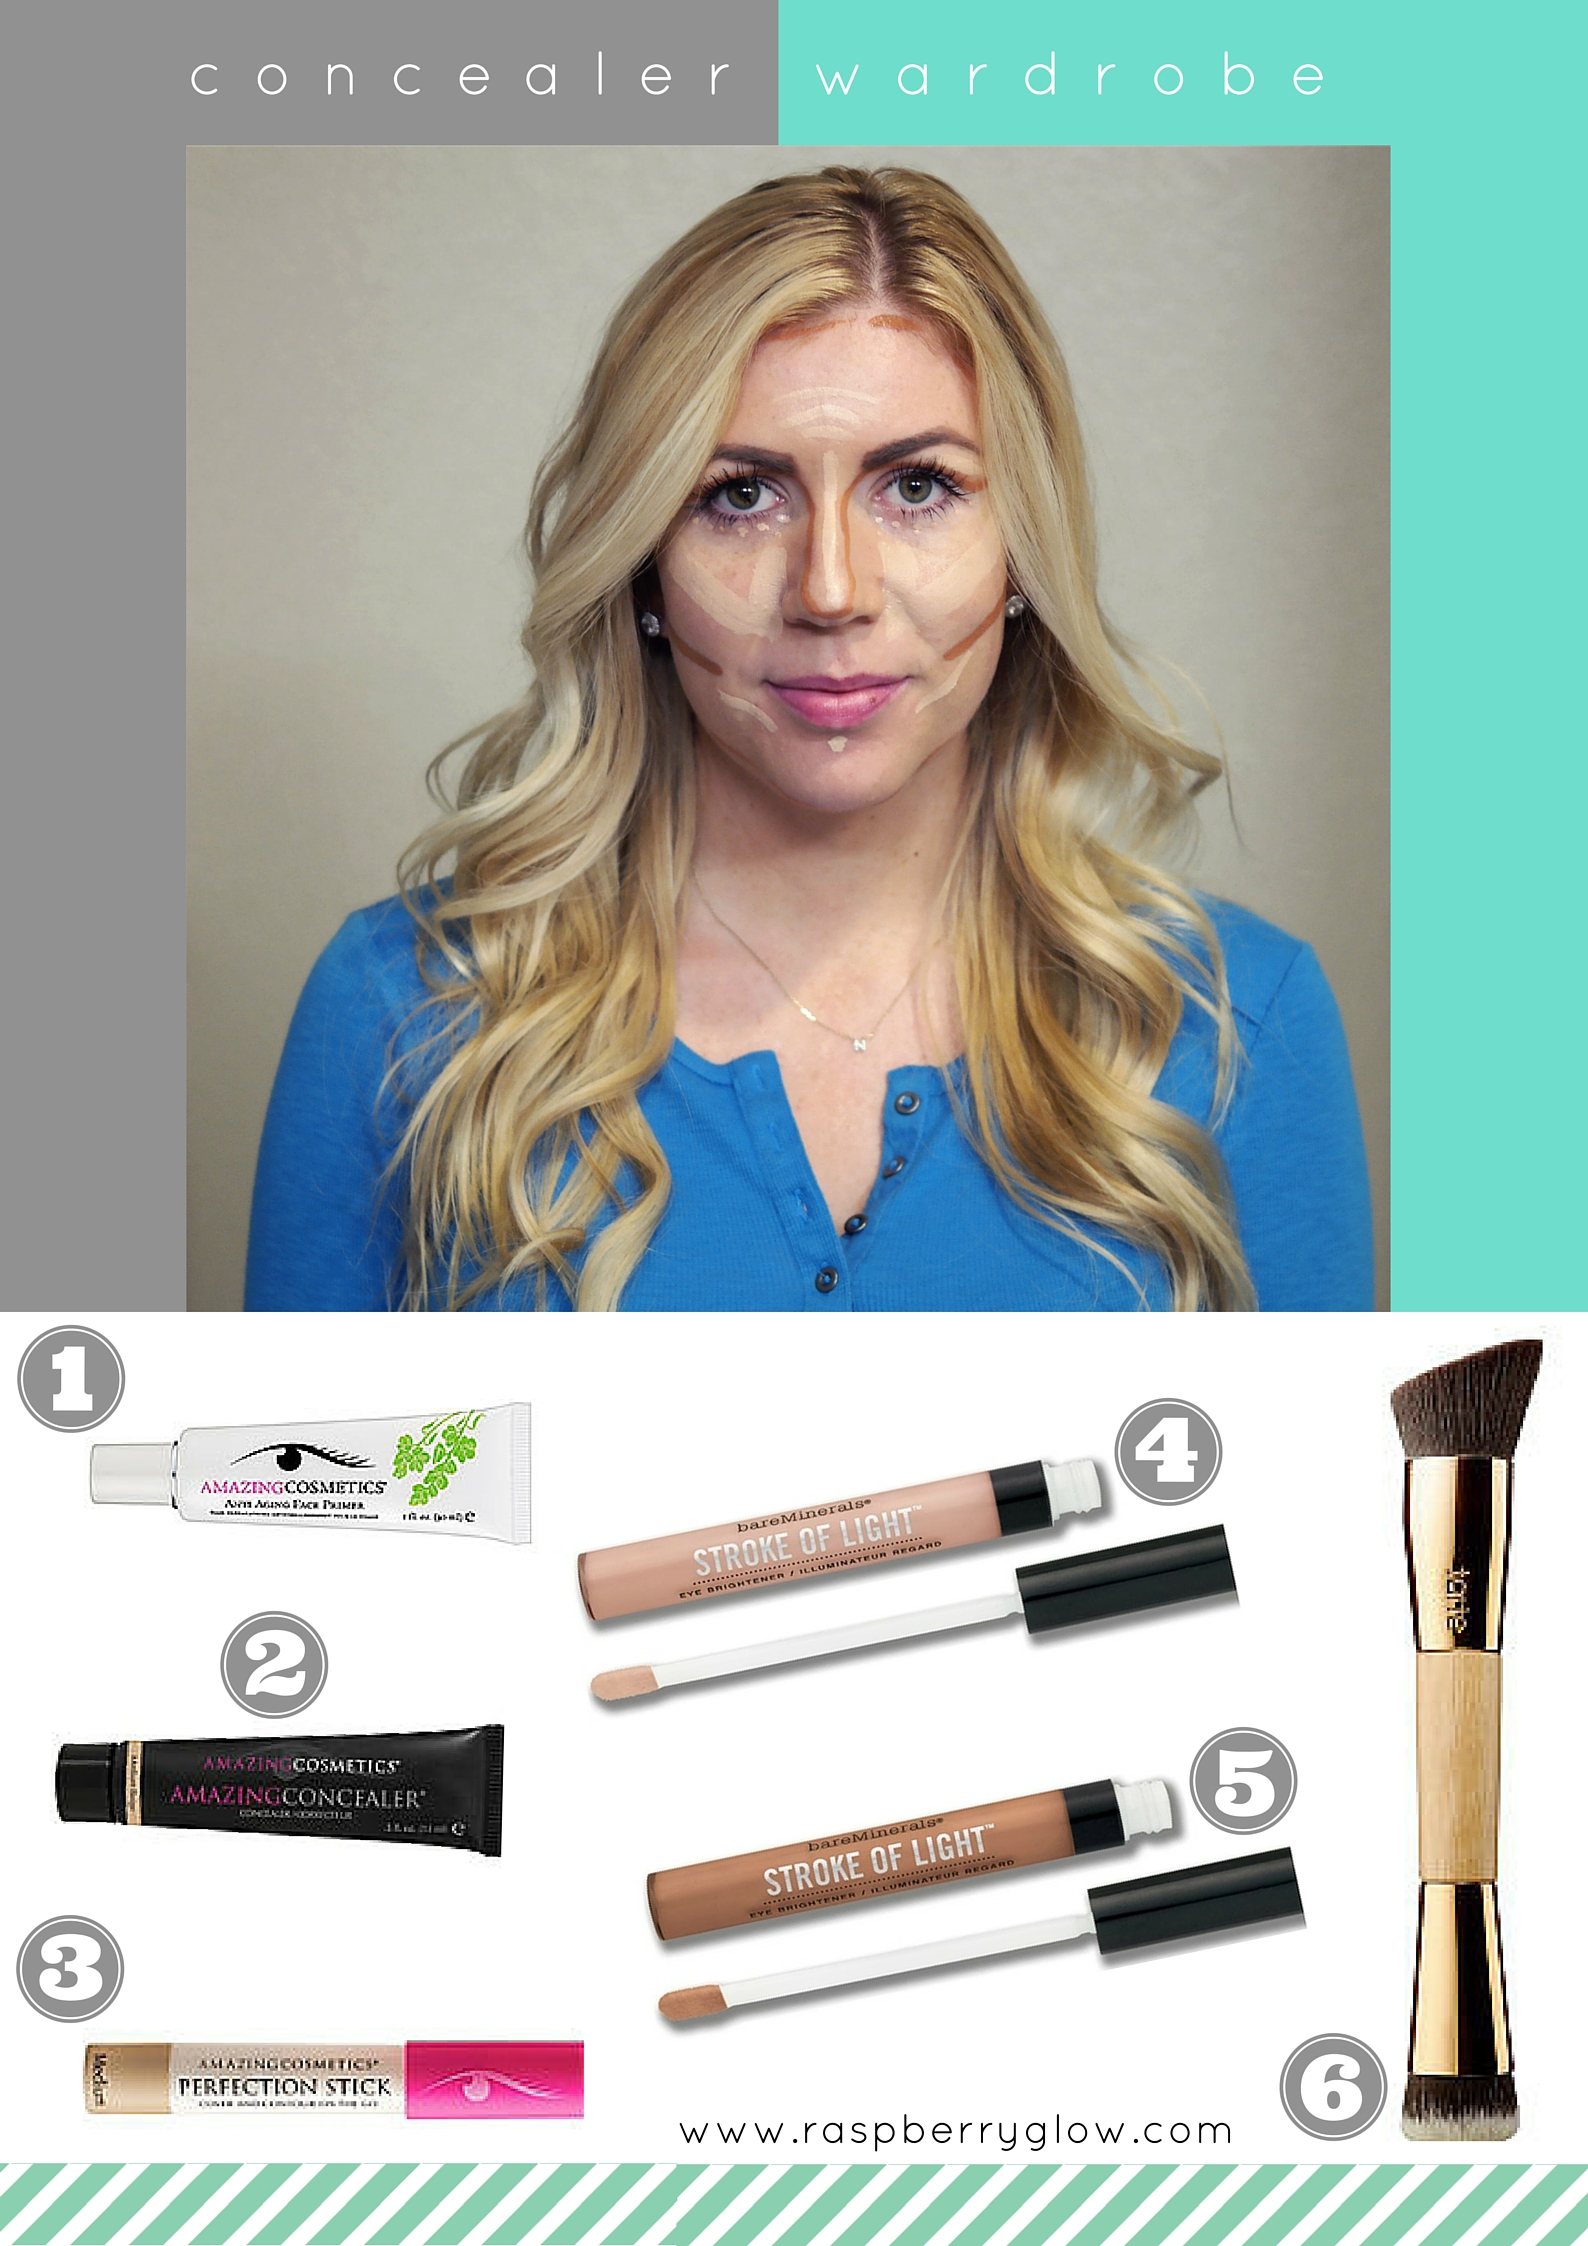 Different Uses For Concealers